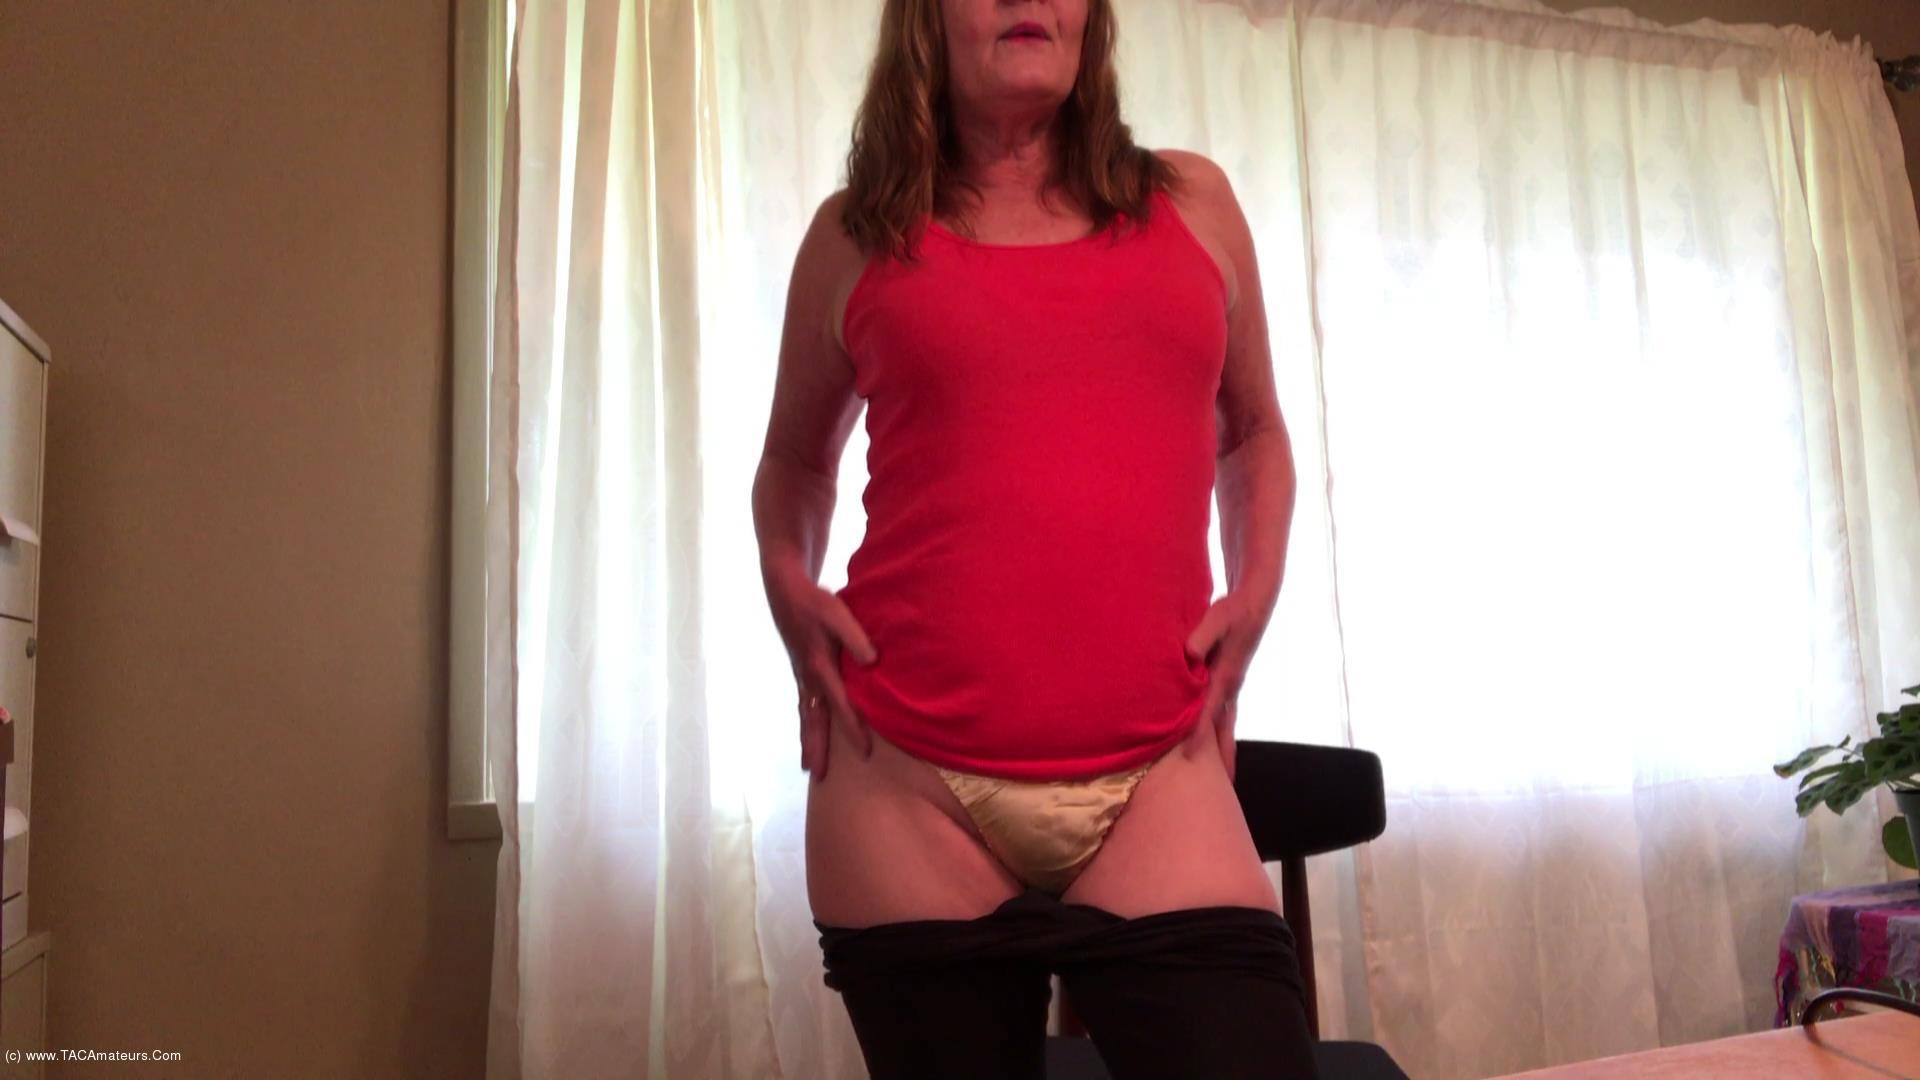 CougarBabeJolee - Panty Worship My New Yellow Pure Silk Panties scene 1